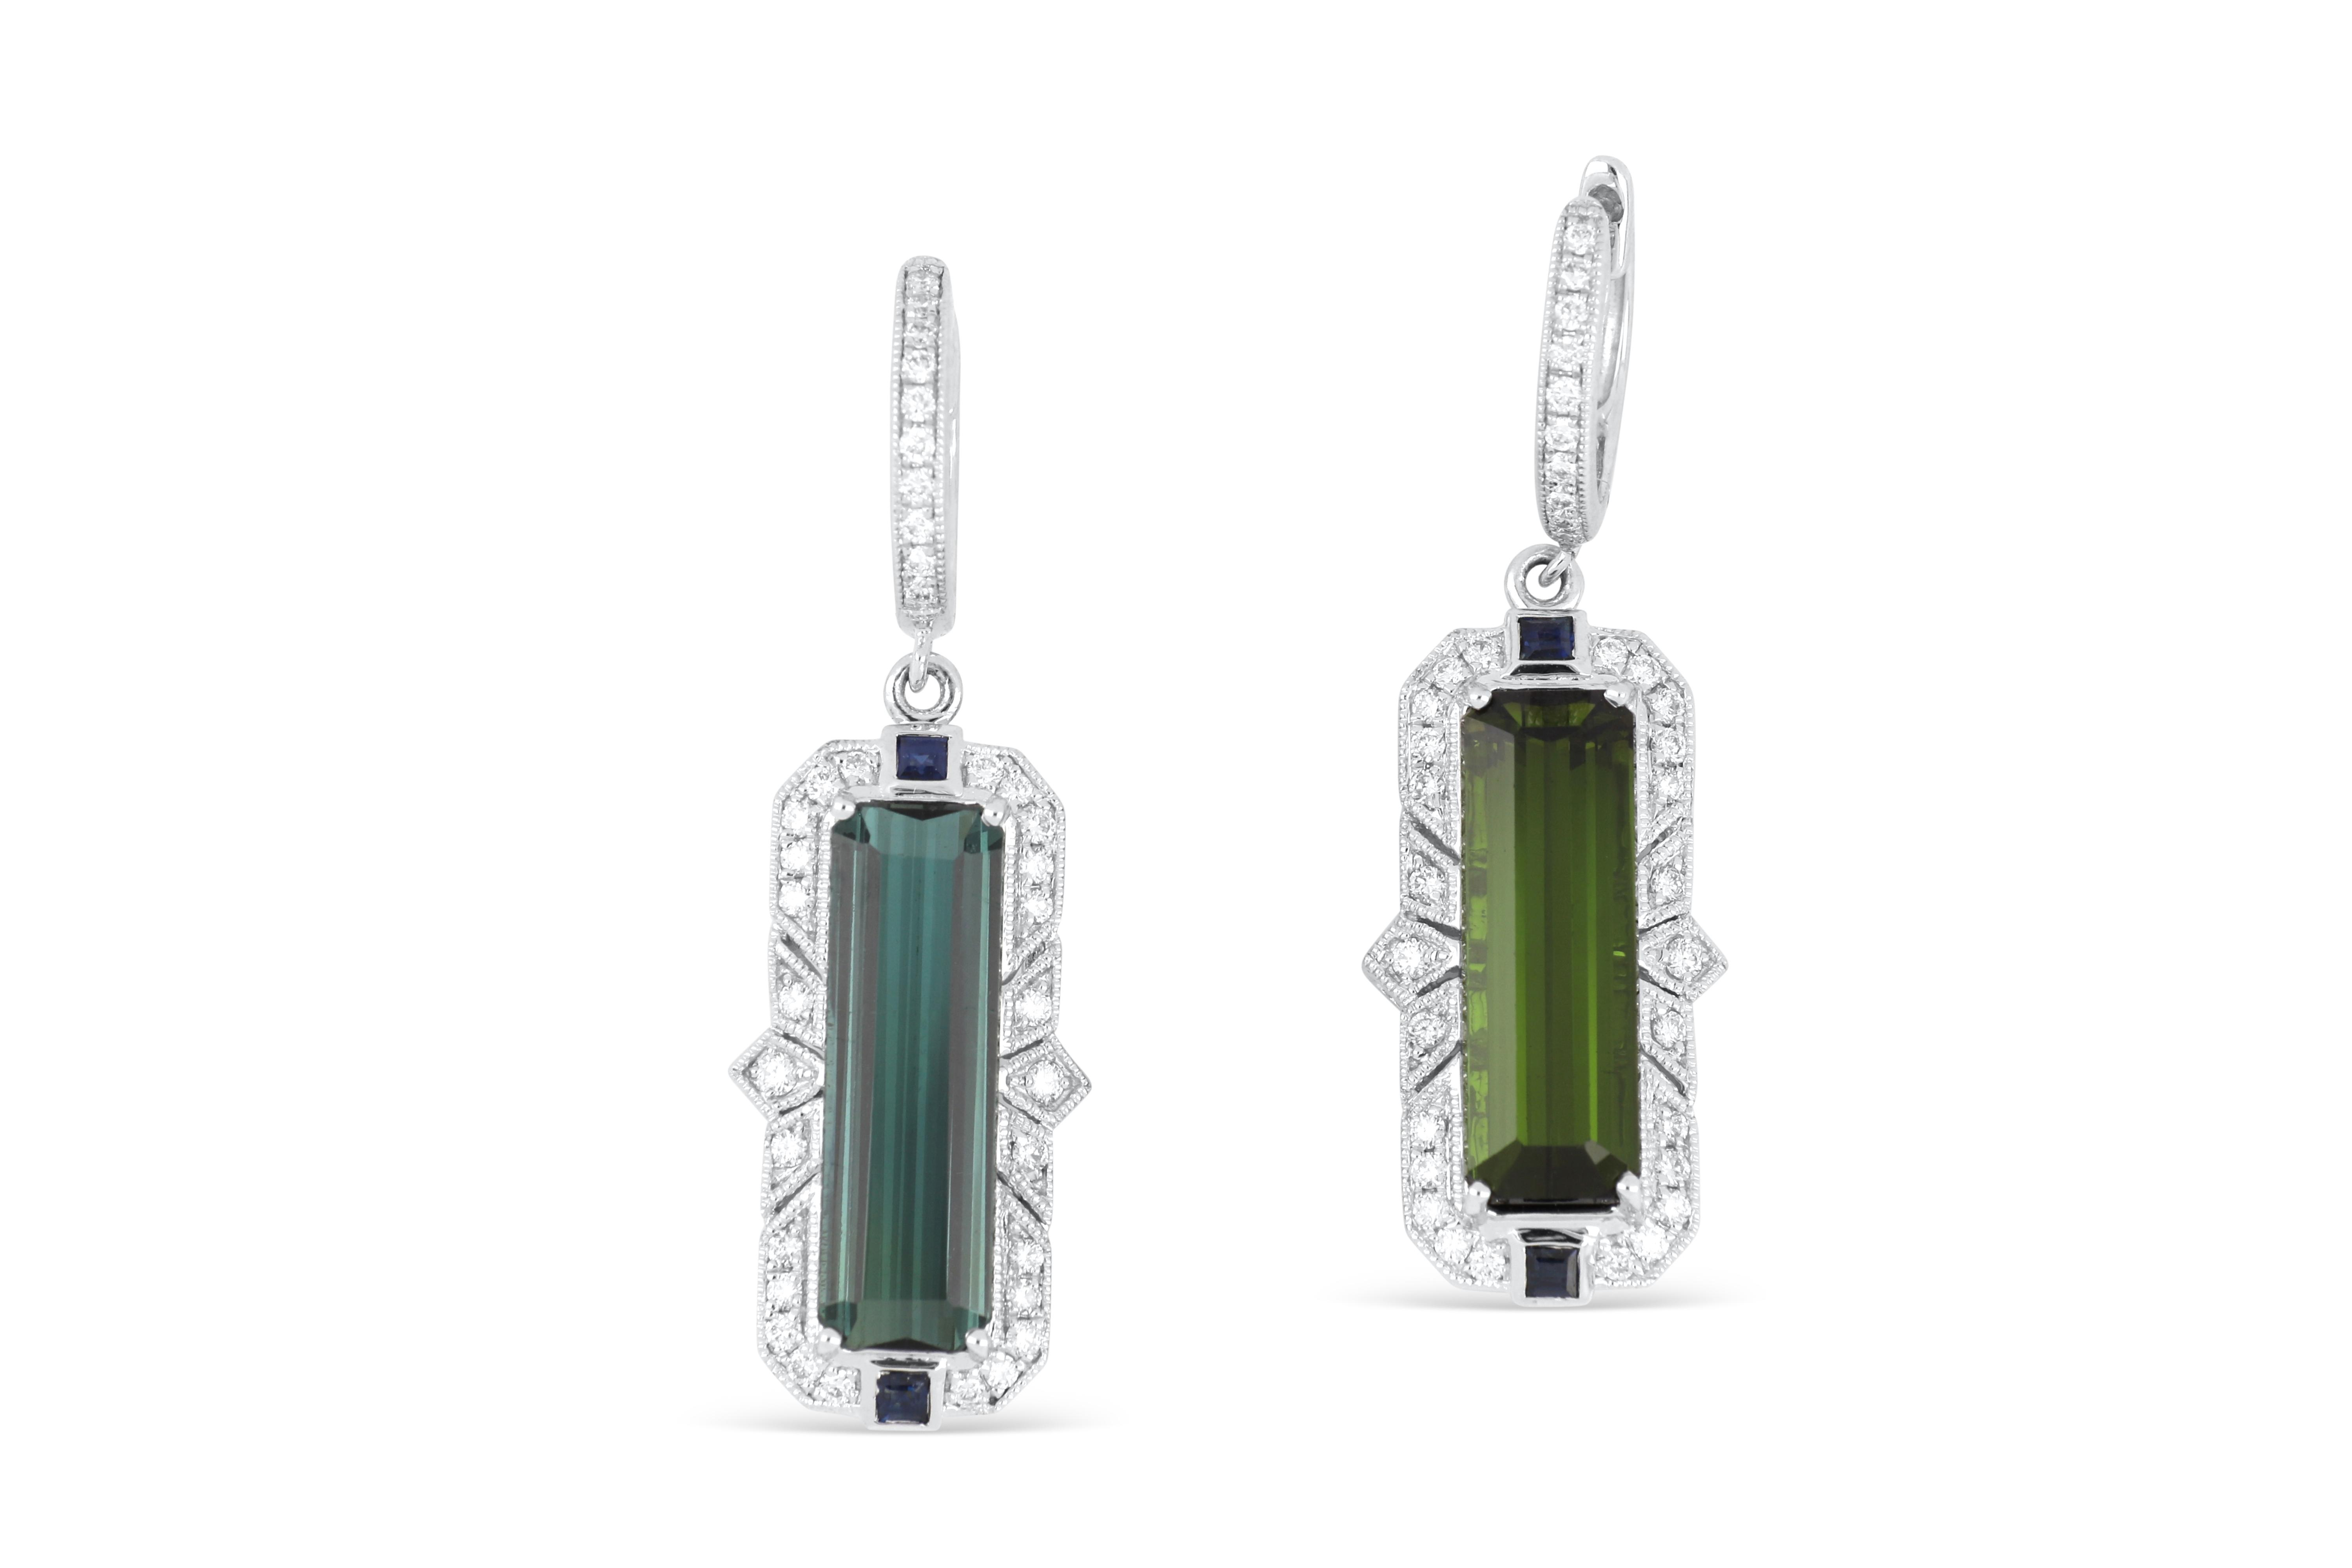 18k white gold earrings set with 2.50cts of green tourmaline & diamonds